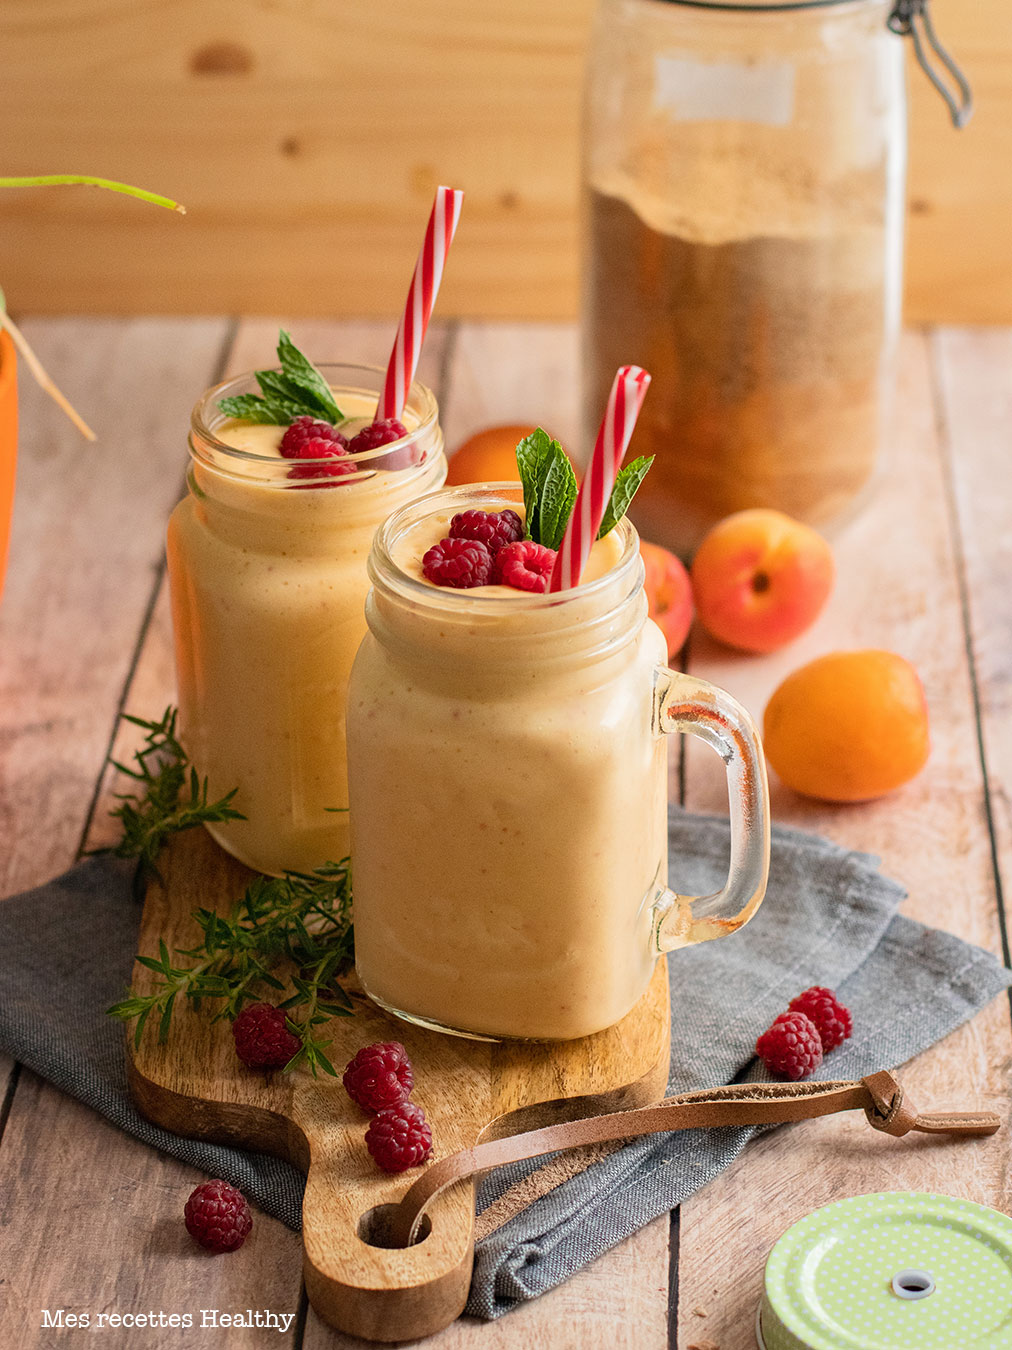 recette healthy-milkshake mangue Abricot-smoothie-fruit-glace